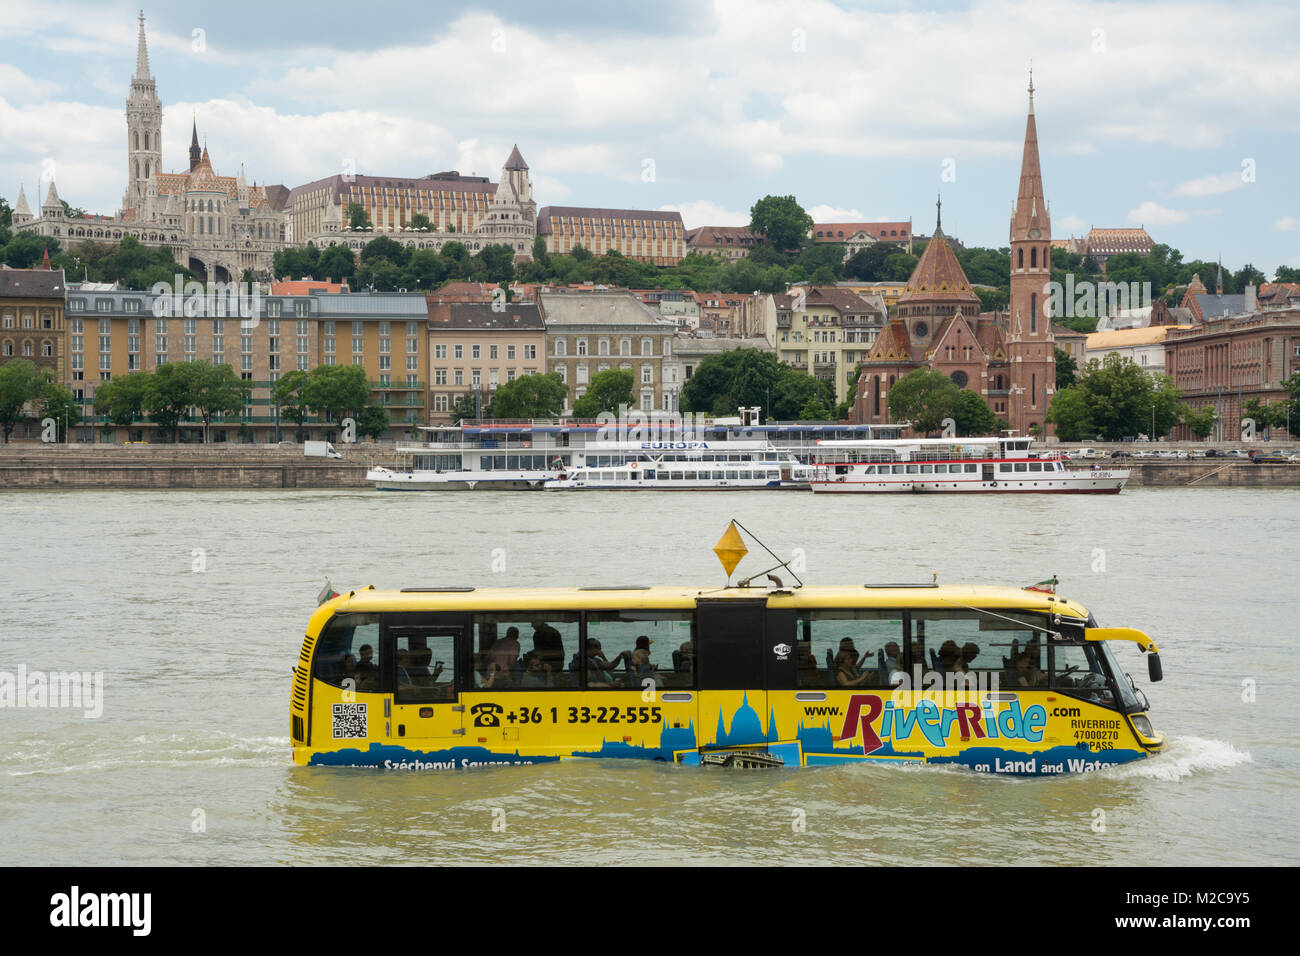 amphibious-river-bus-full-of-tourists-on-the-danube-in-budapest-hungary-M2C9Y5.jpg